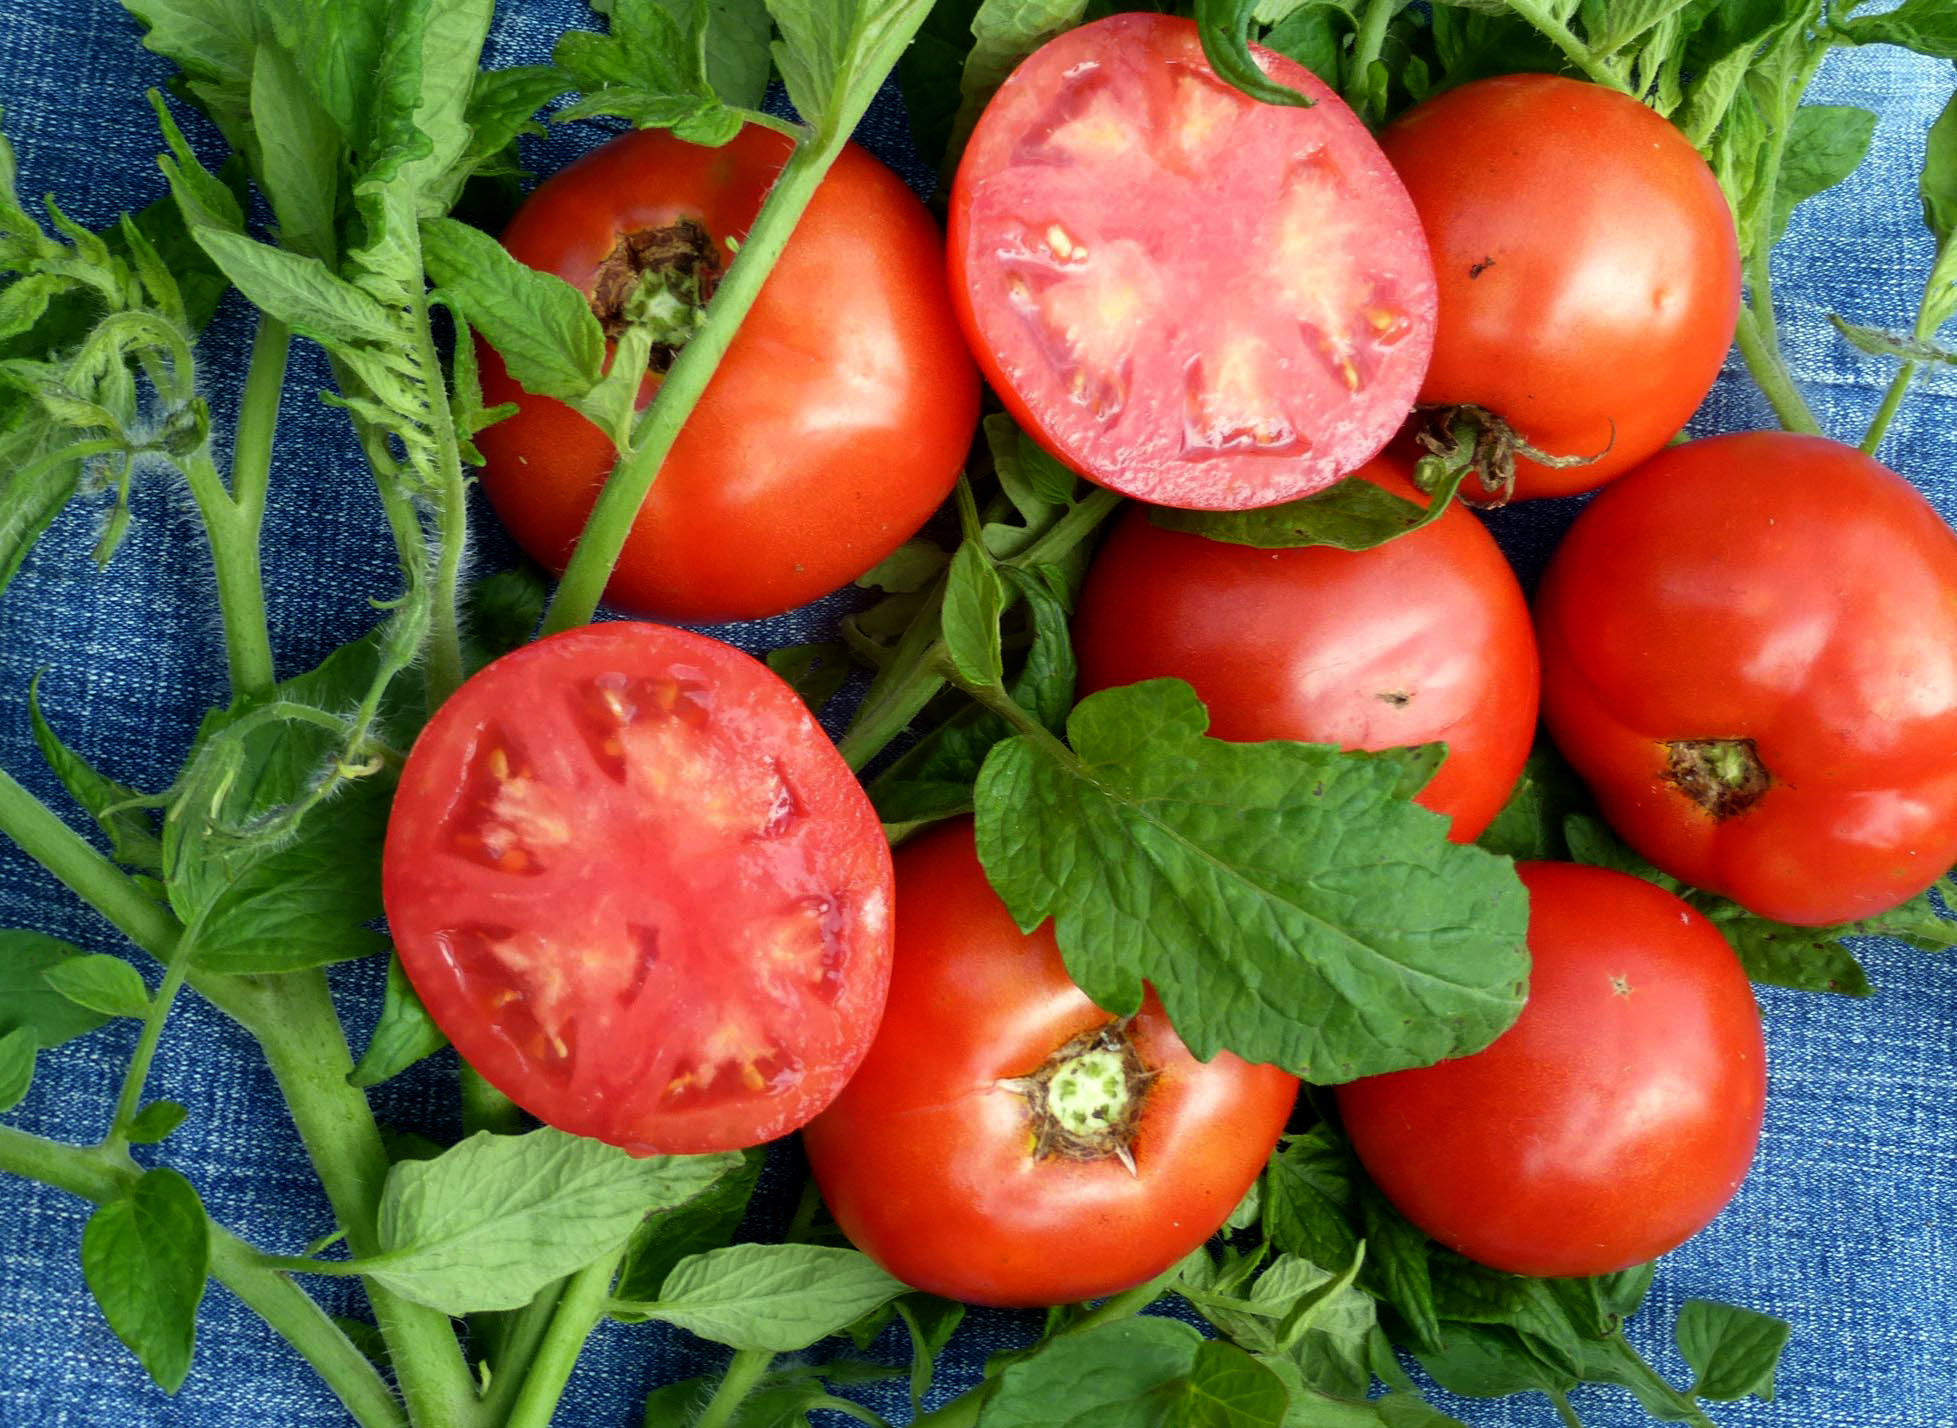 Few People Know That West Virginia Is The Birthplace Of The First Blight-Resistant Tomato And Other Popular Produce Lines